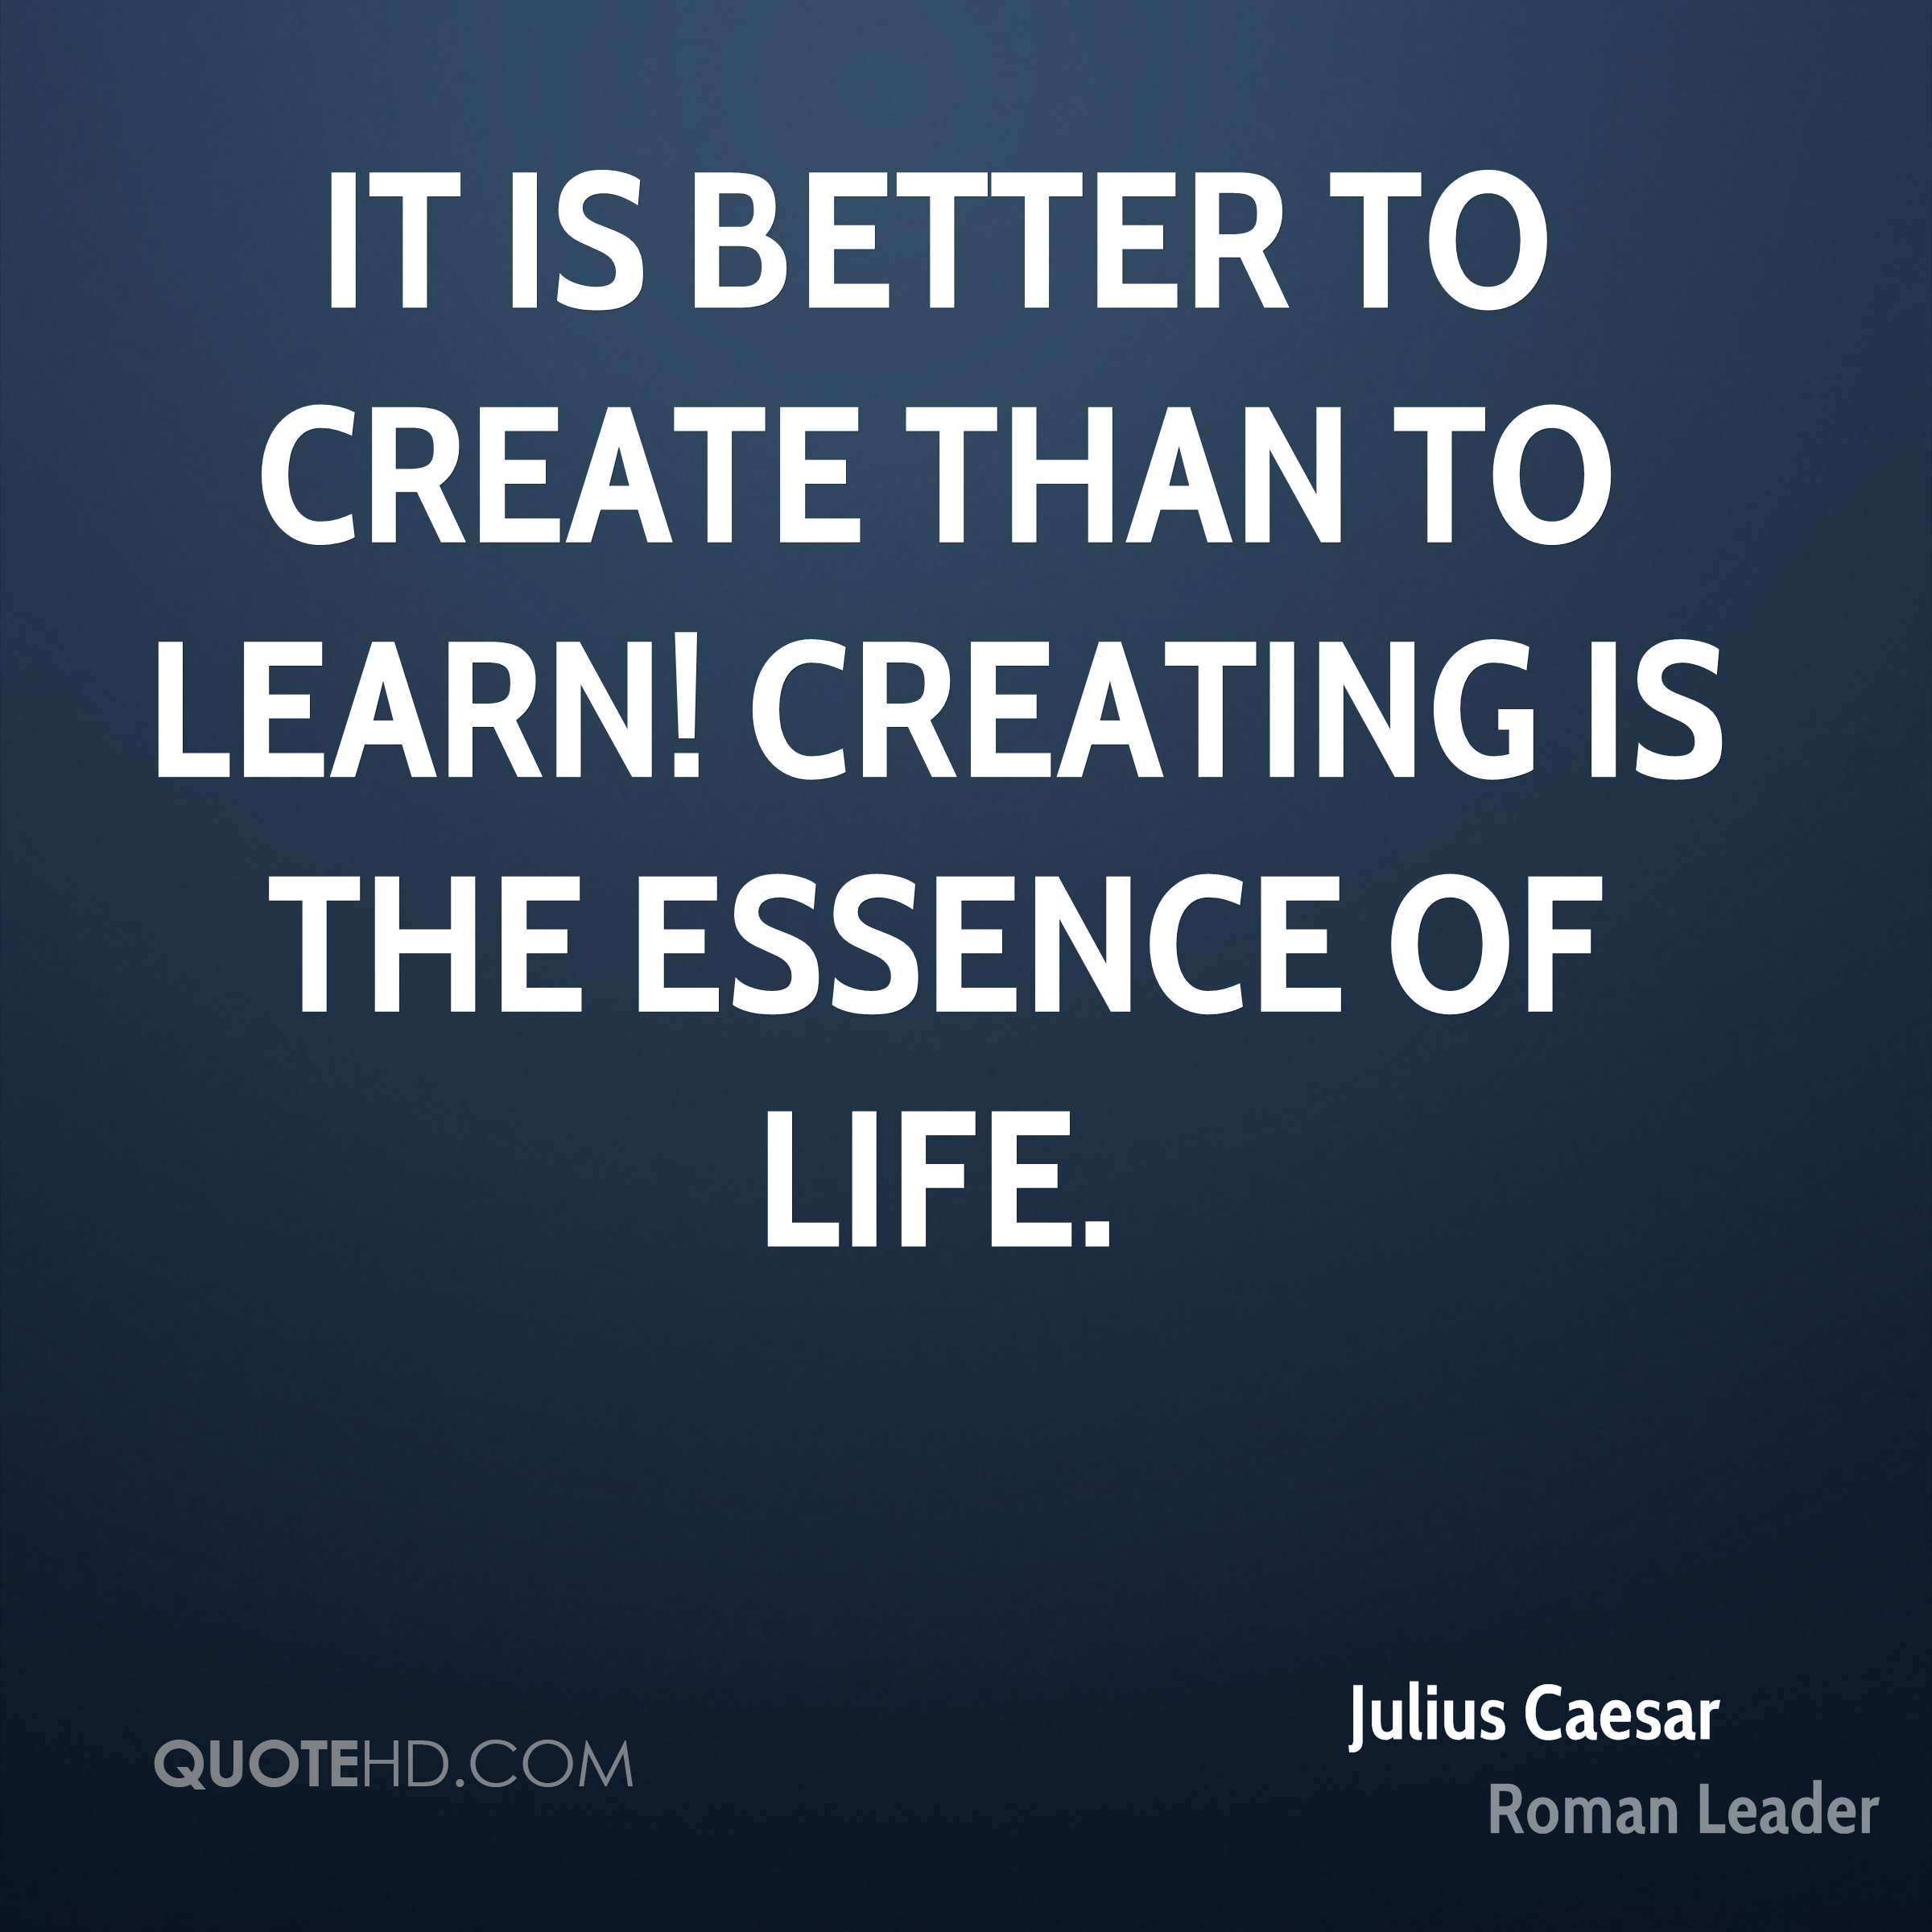 Julius Caesar Leadership Quotes  Julius Caesar Life Quotes